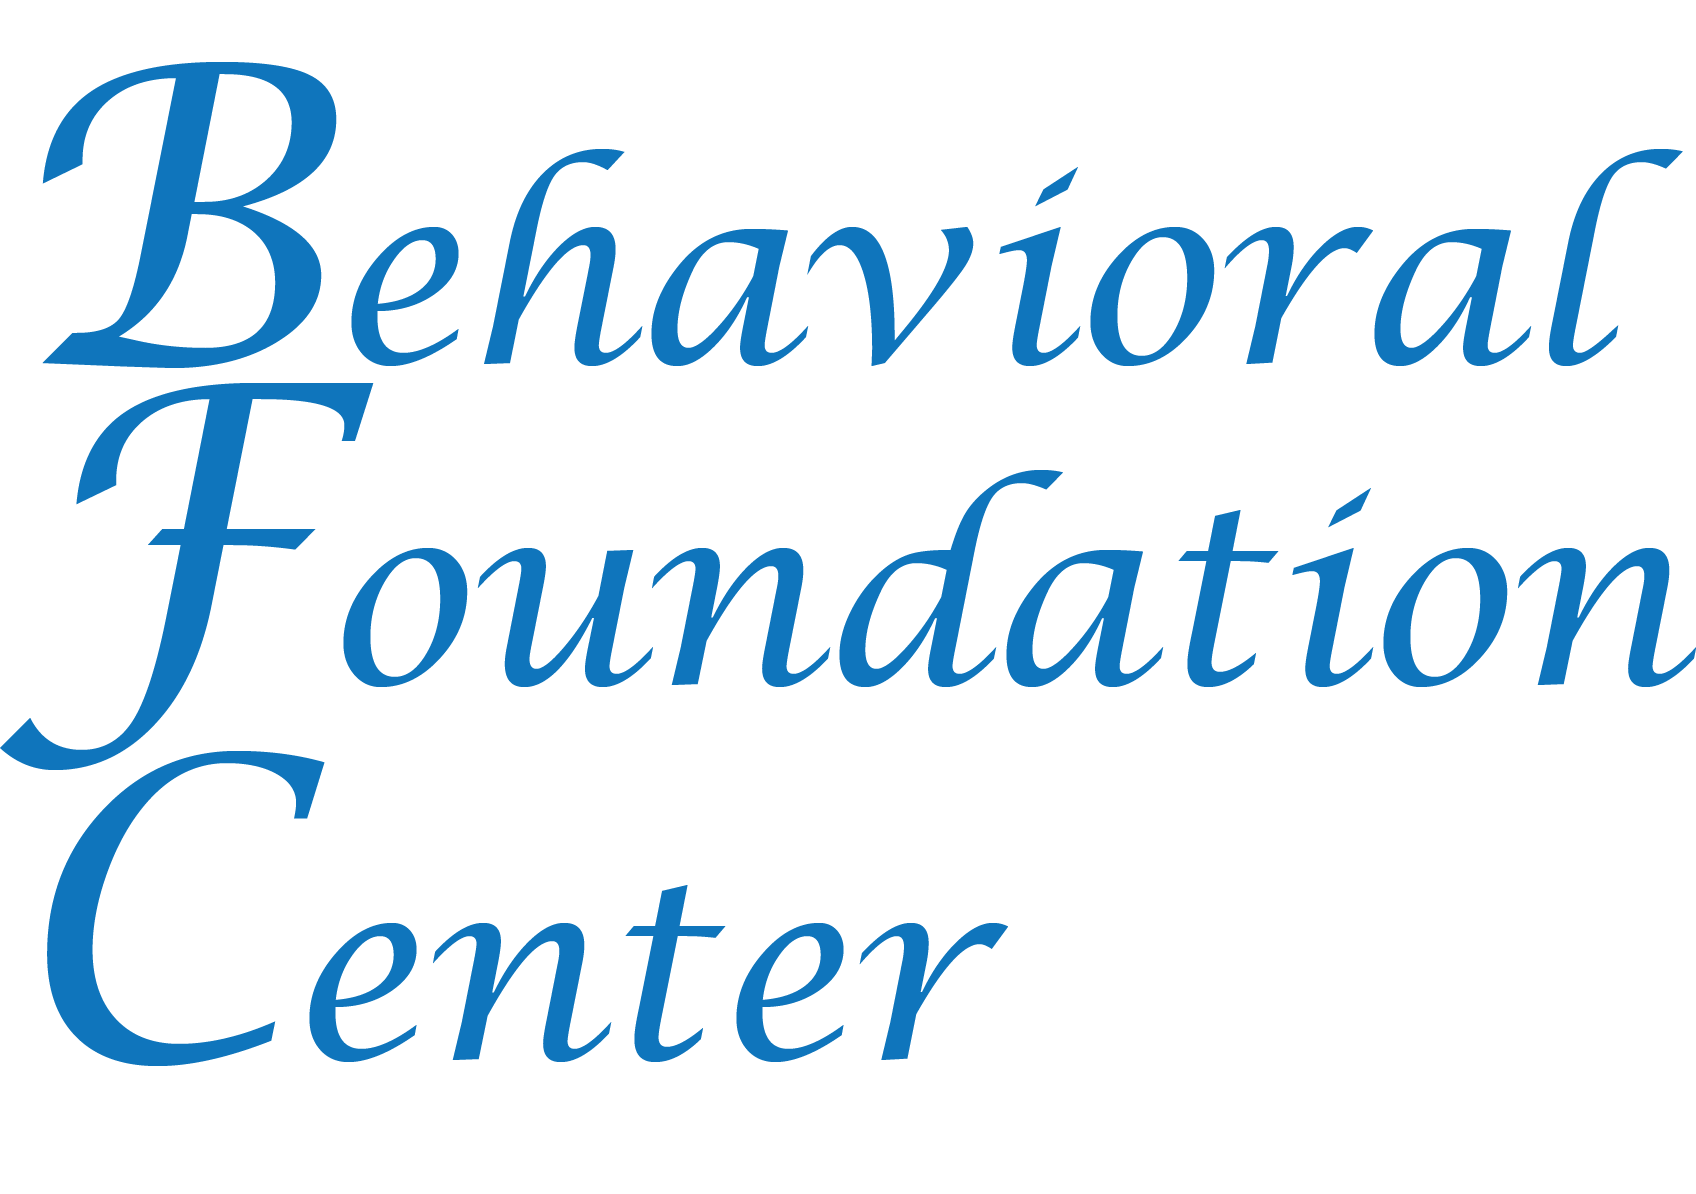 Behavioral Foundation